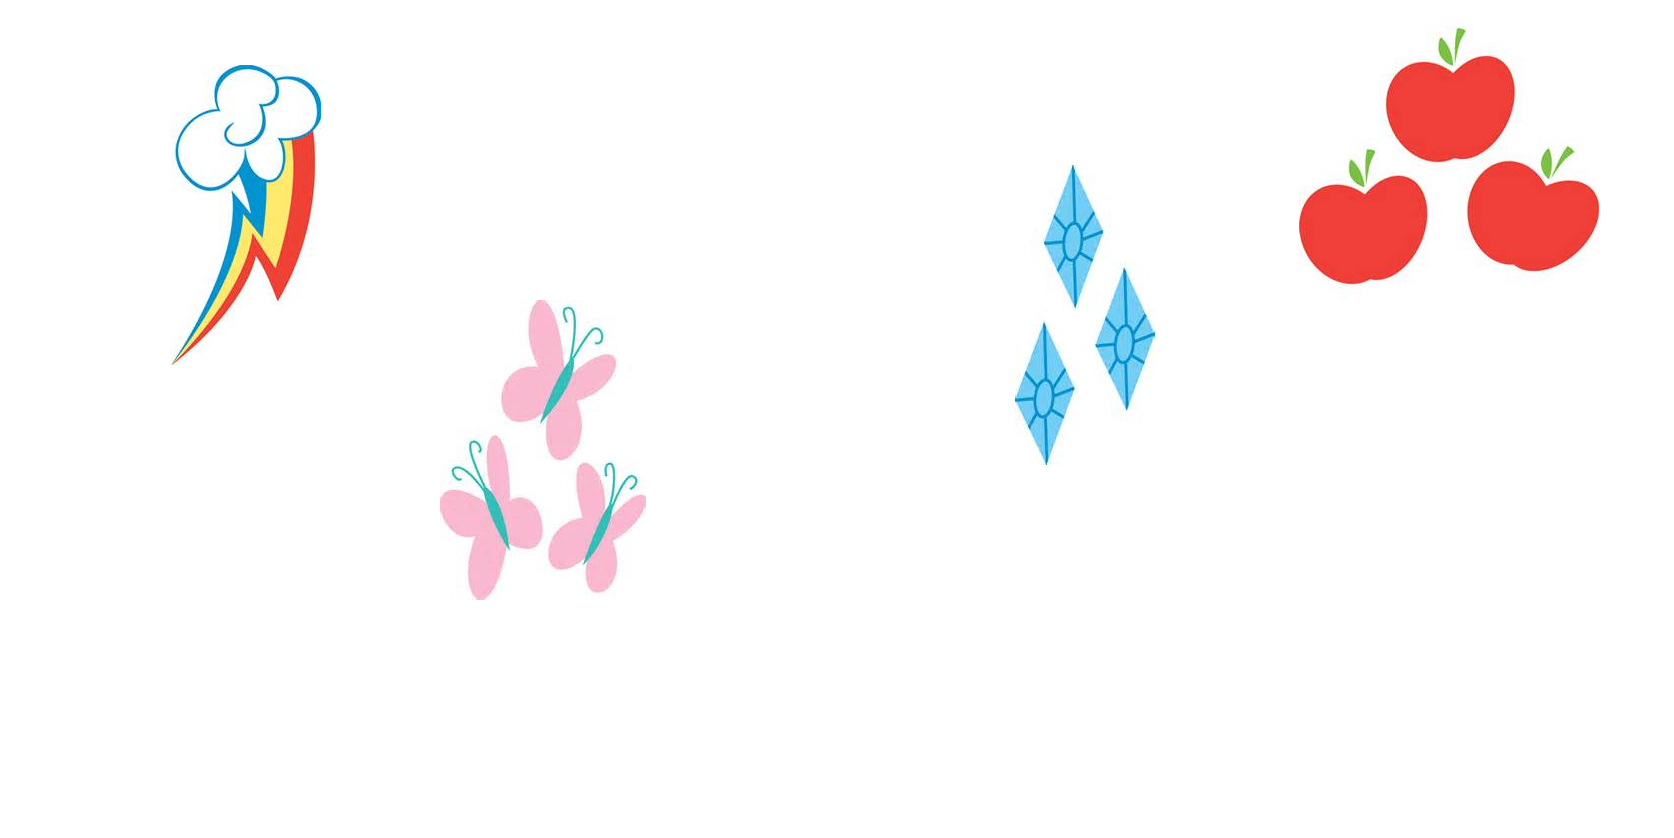 From mlp which cutie mark would you have